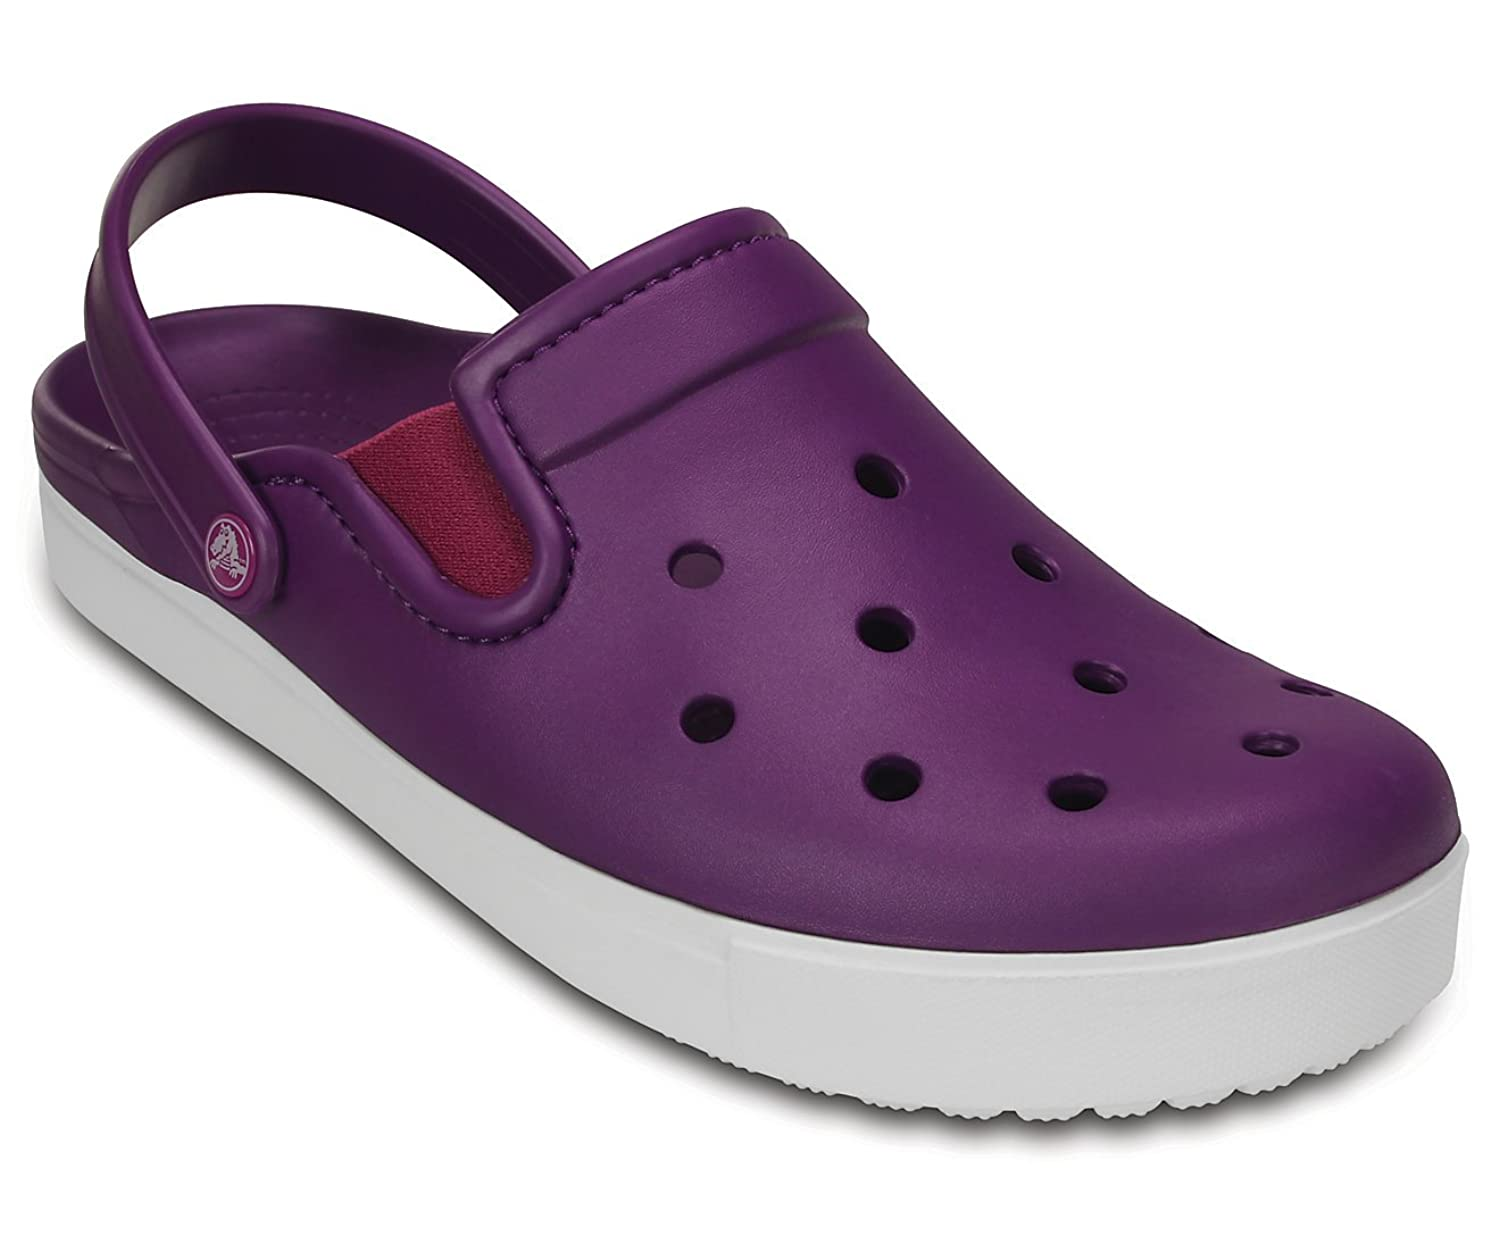 Crocs - Unisex Citilane Clog, Size: 2 D(M) US Mens / 4 B(M) US Womens, Color: Amethyst/White